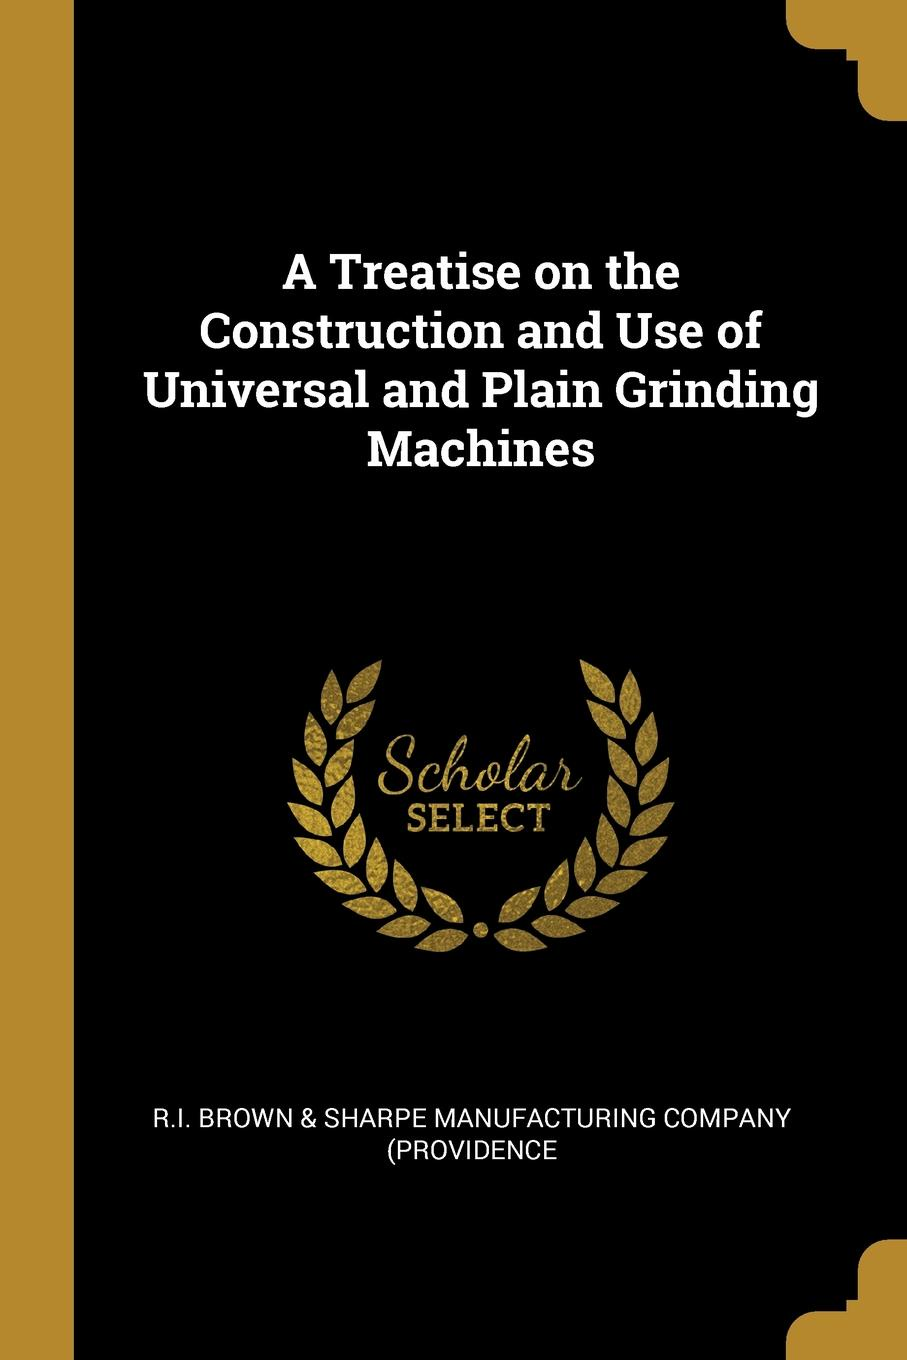 R.I. Brown & Sharpe Manufac (Providence. A Treatise on the Construction and Use of Universal and Plain Grinding Machines